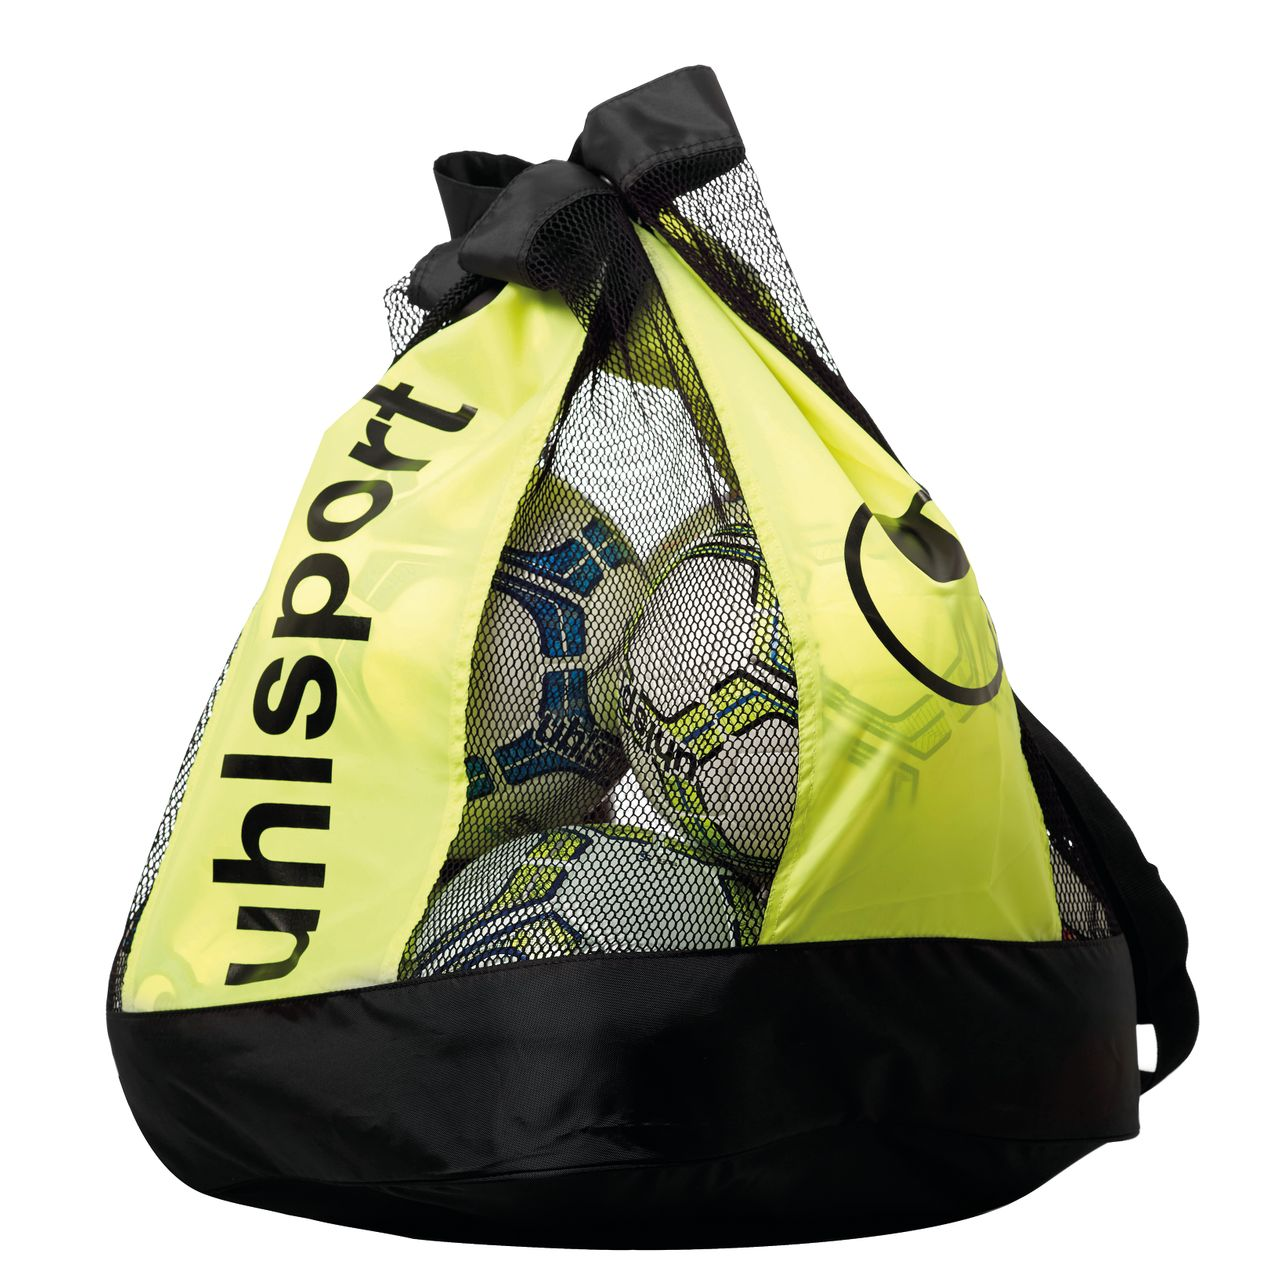 Uhlsport BALLBAG (16 BALLS)